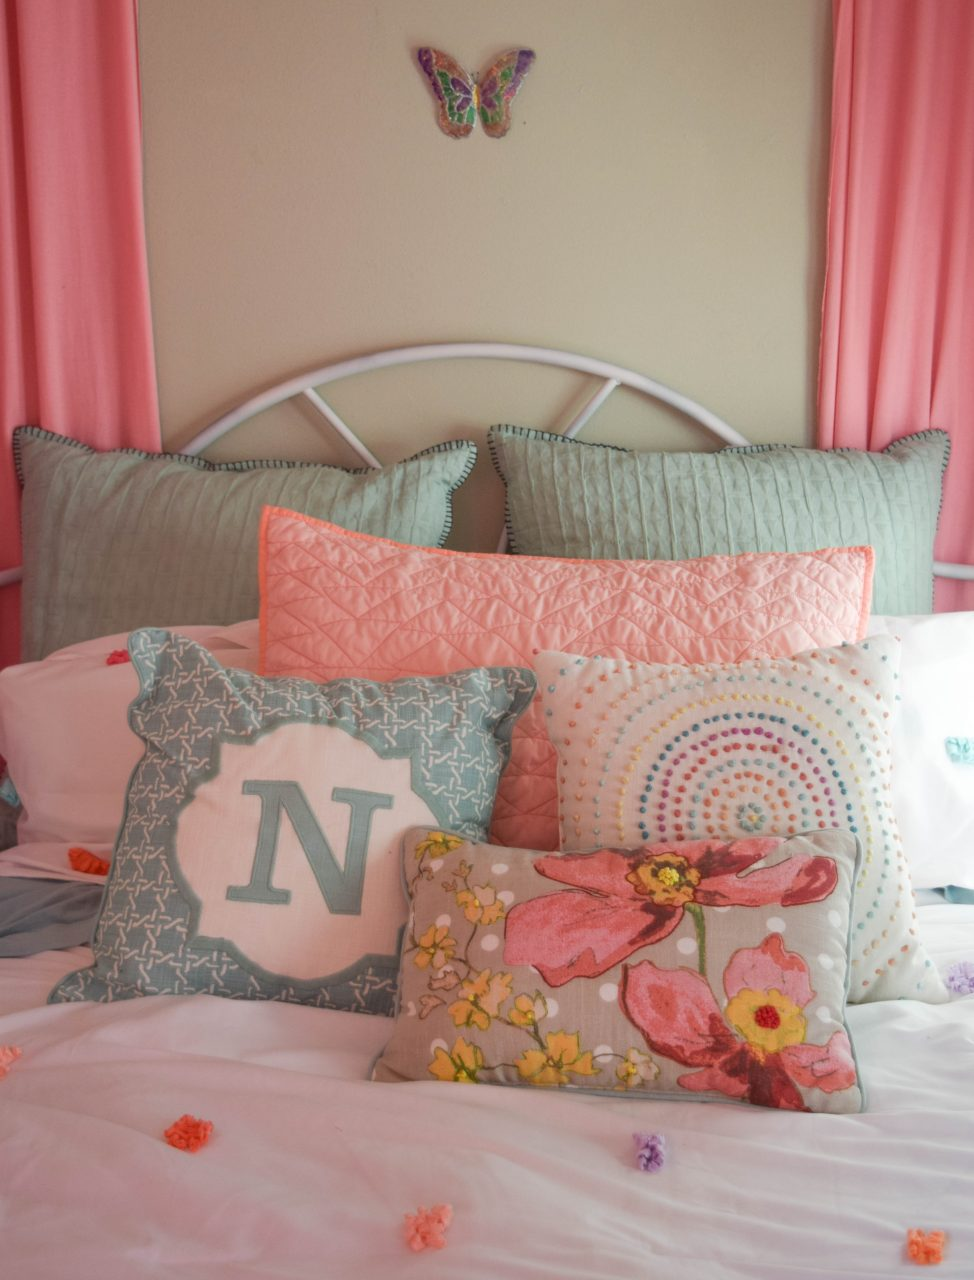 Girl Bed Throw Pillows 1 Of 1 Our House Now A Home